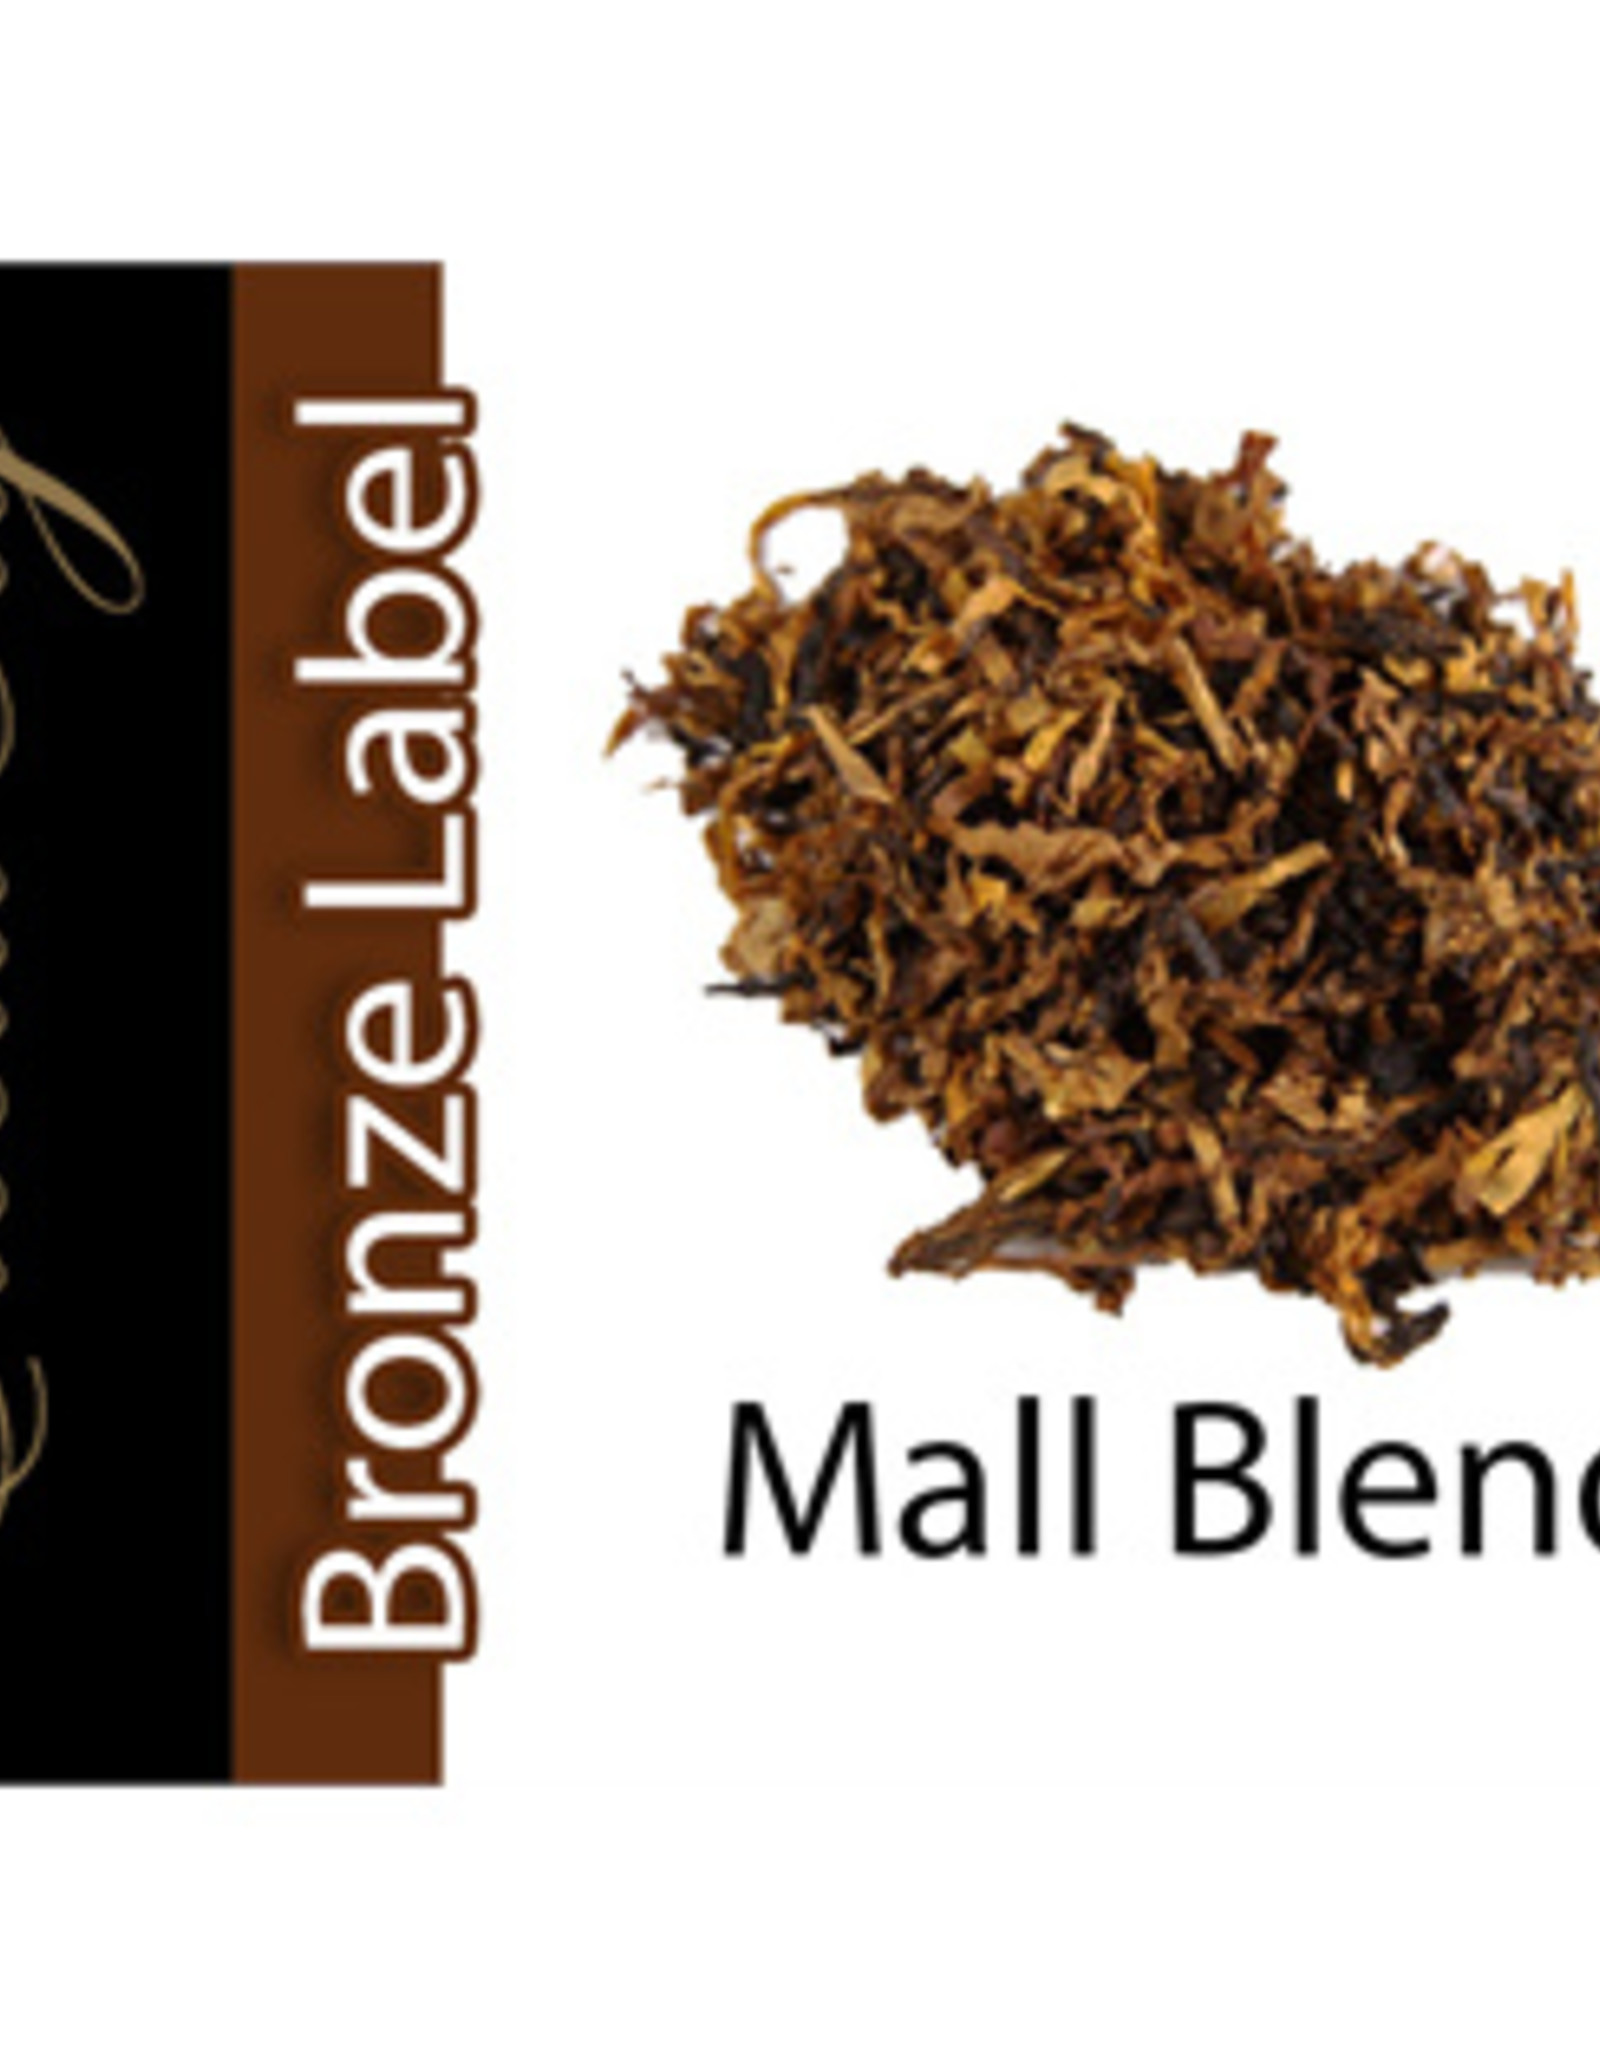 Exclucig Exclucig Bronze Label E-liquid Mall Blend 0 mg Nicotine